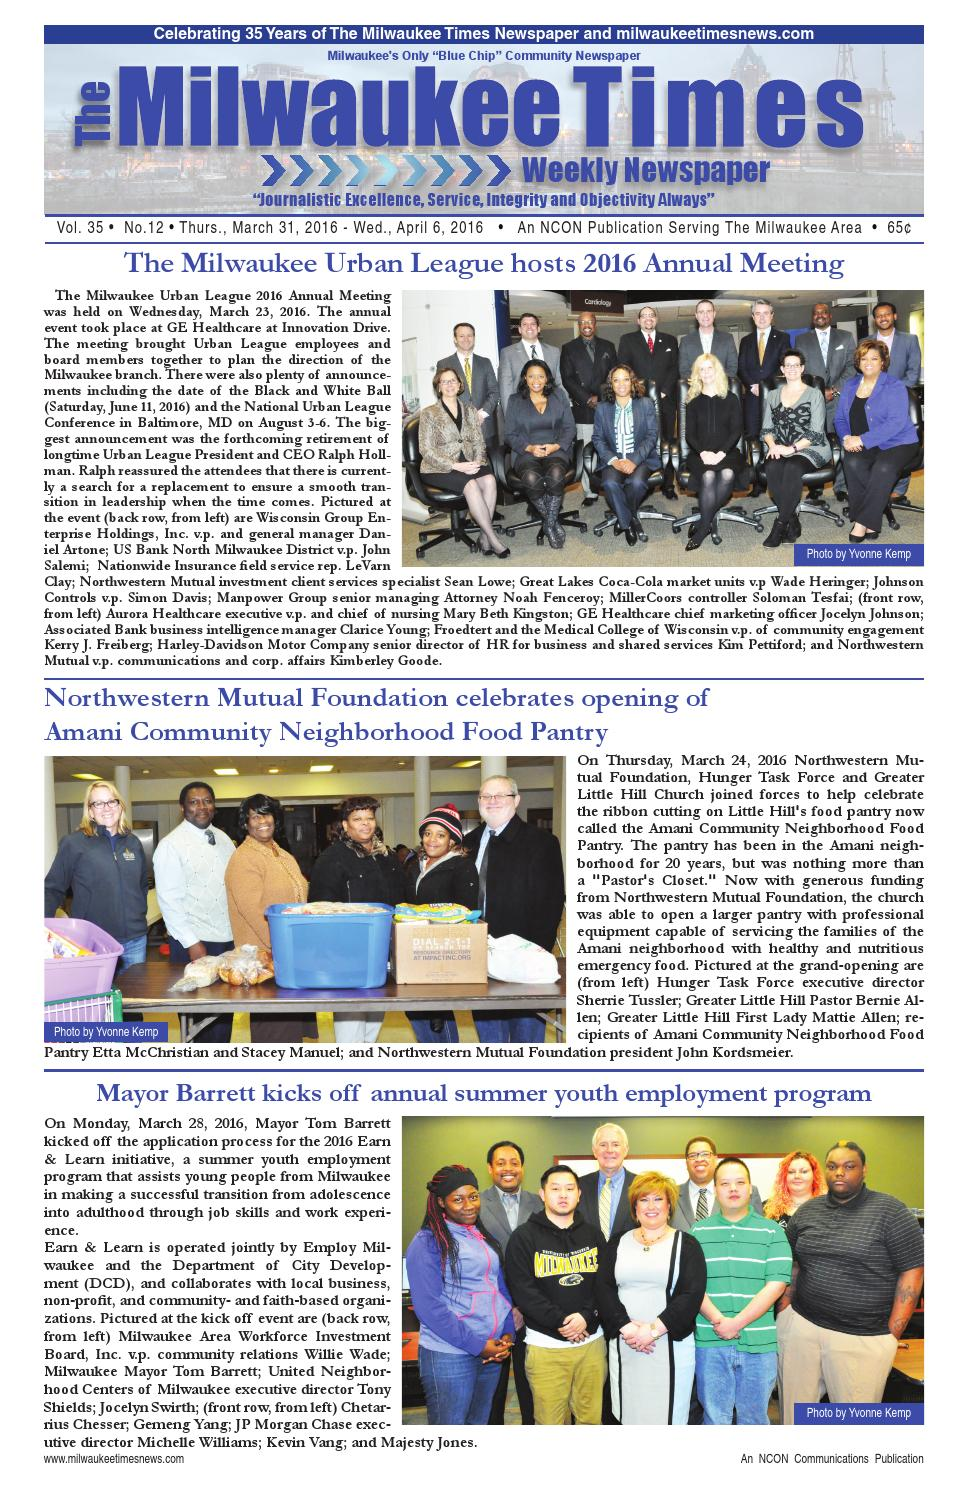 Miltimes 3 31 16 issue by Milwaukee Times News - issuu